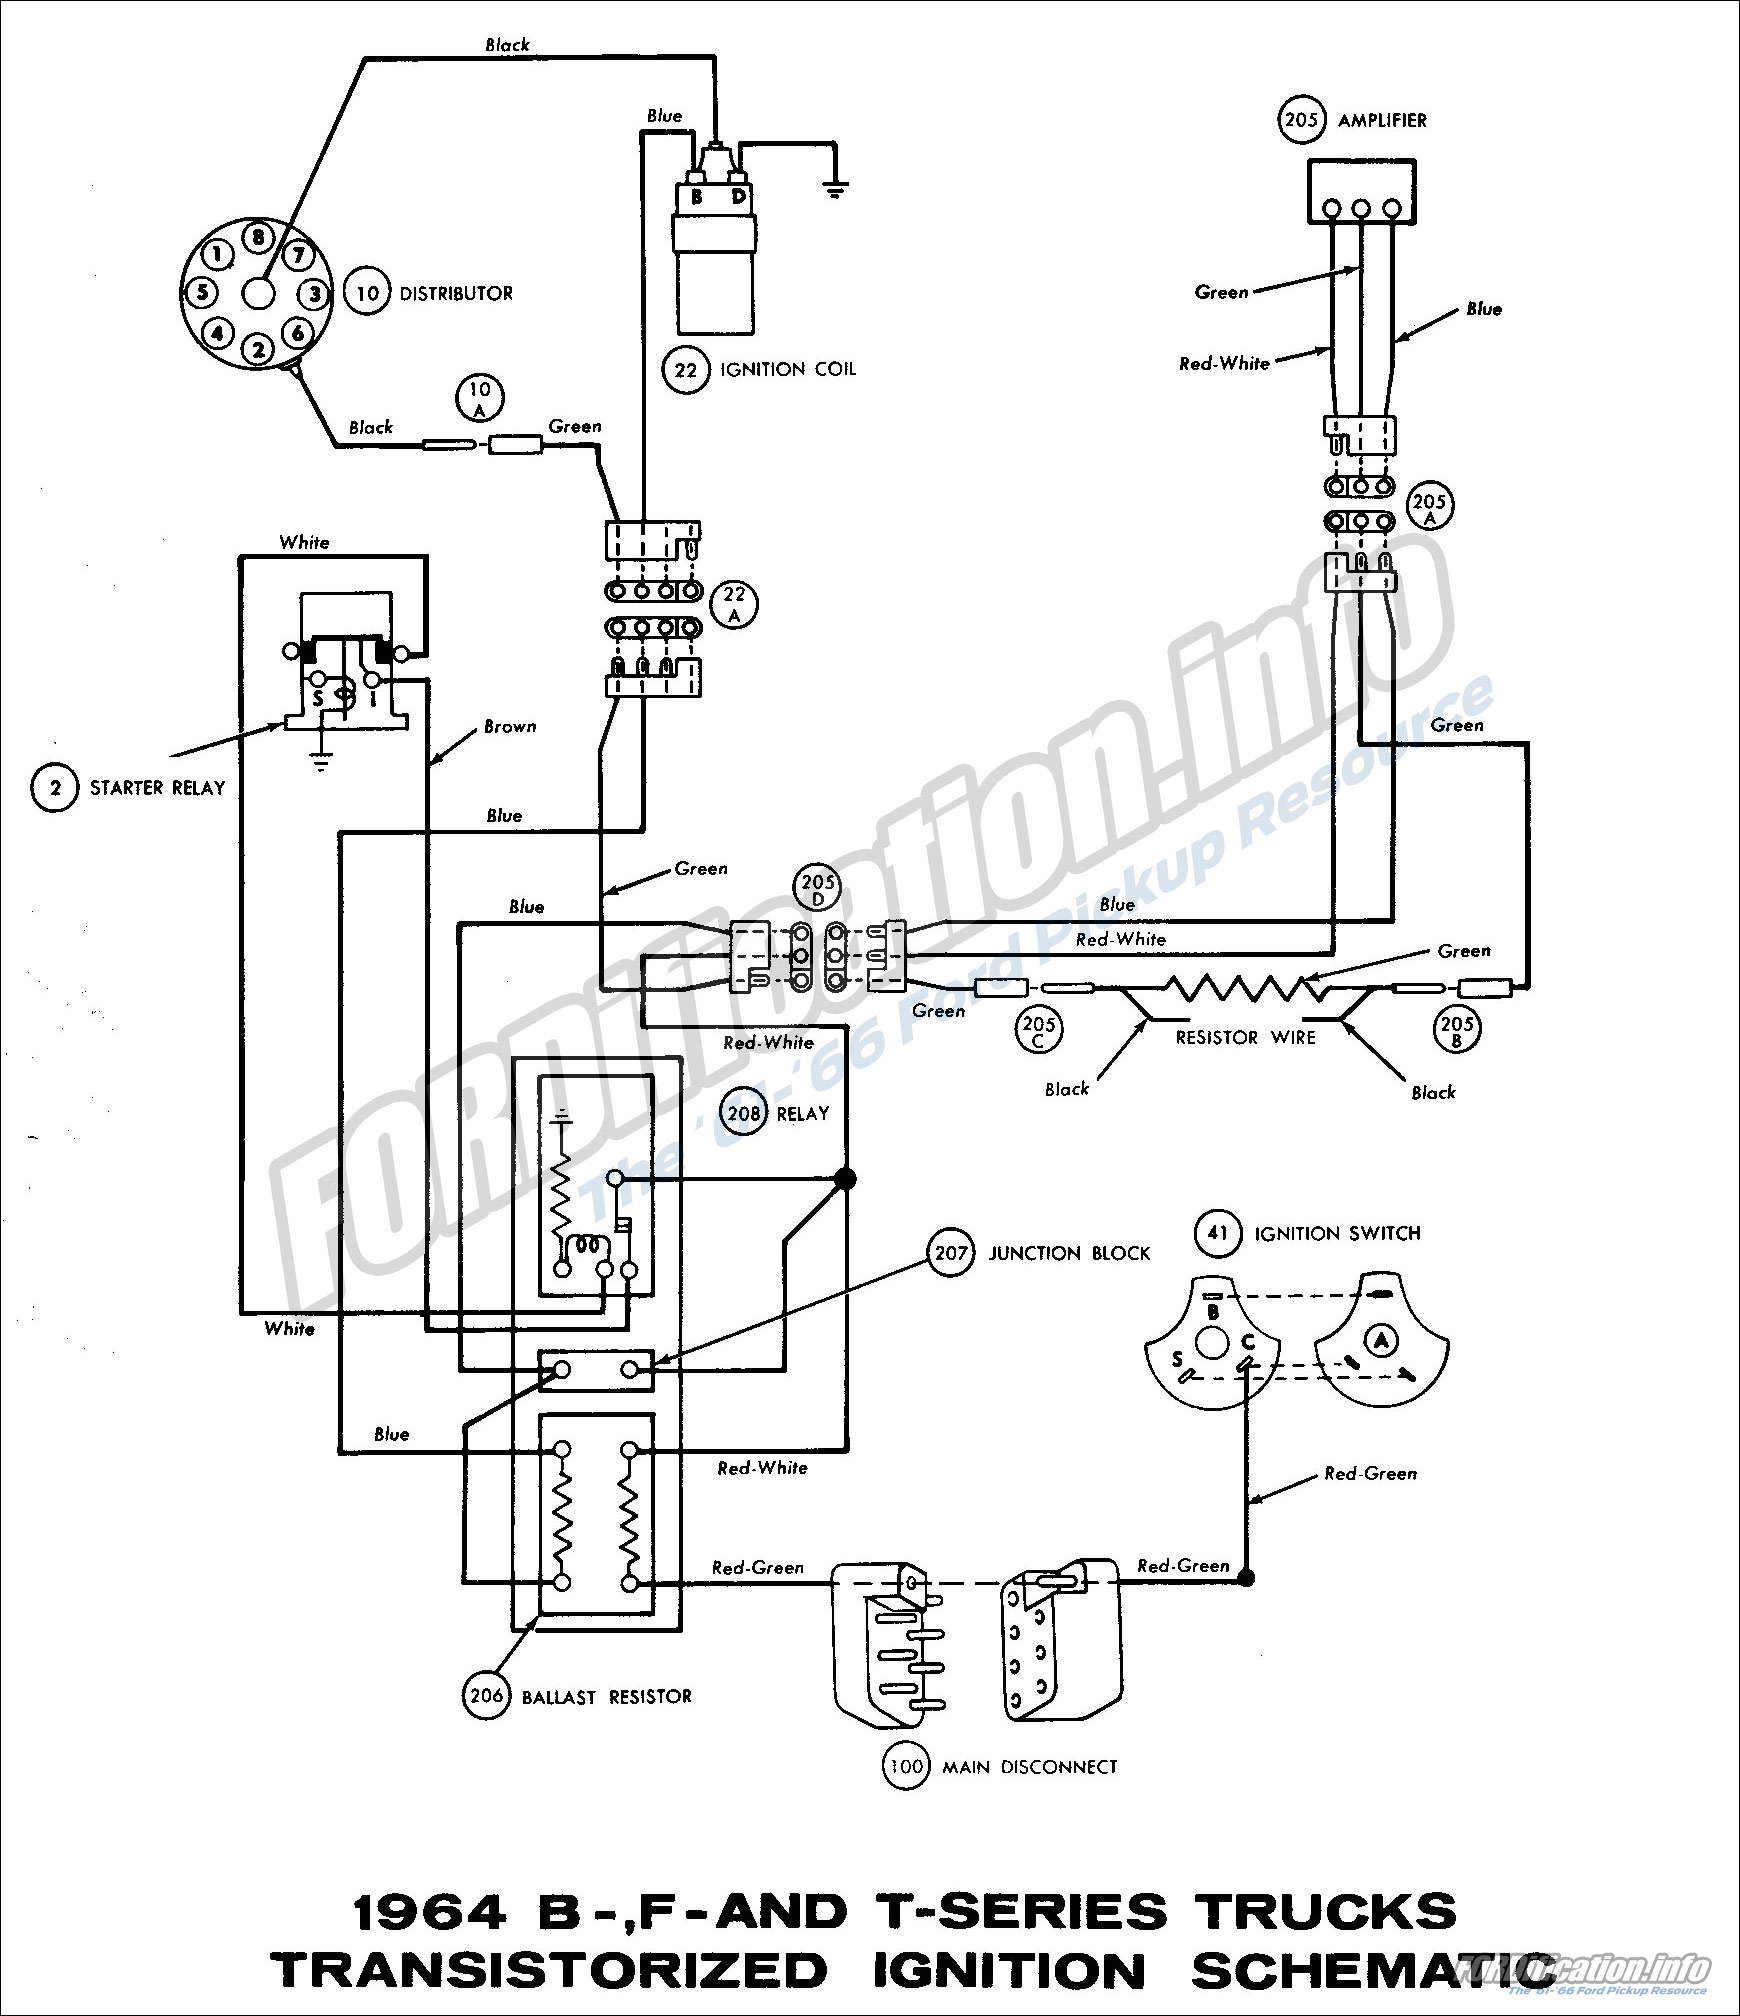 hight resolution of 1964 ford truck wiring diagrams fordification info the 61 66 rh fordification info 1964 ford fairlane